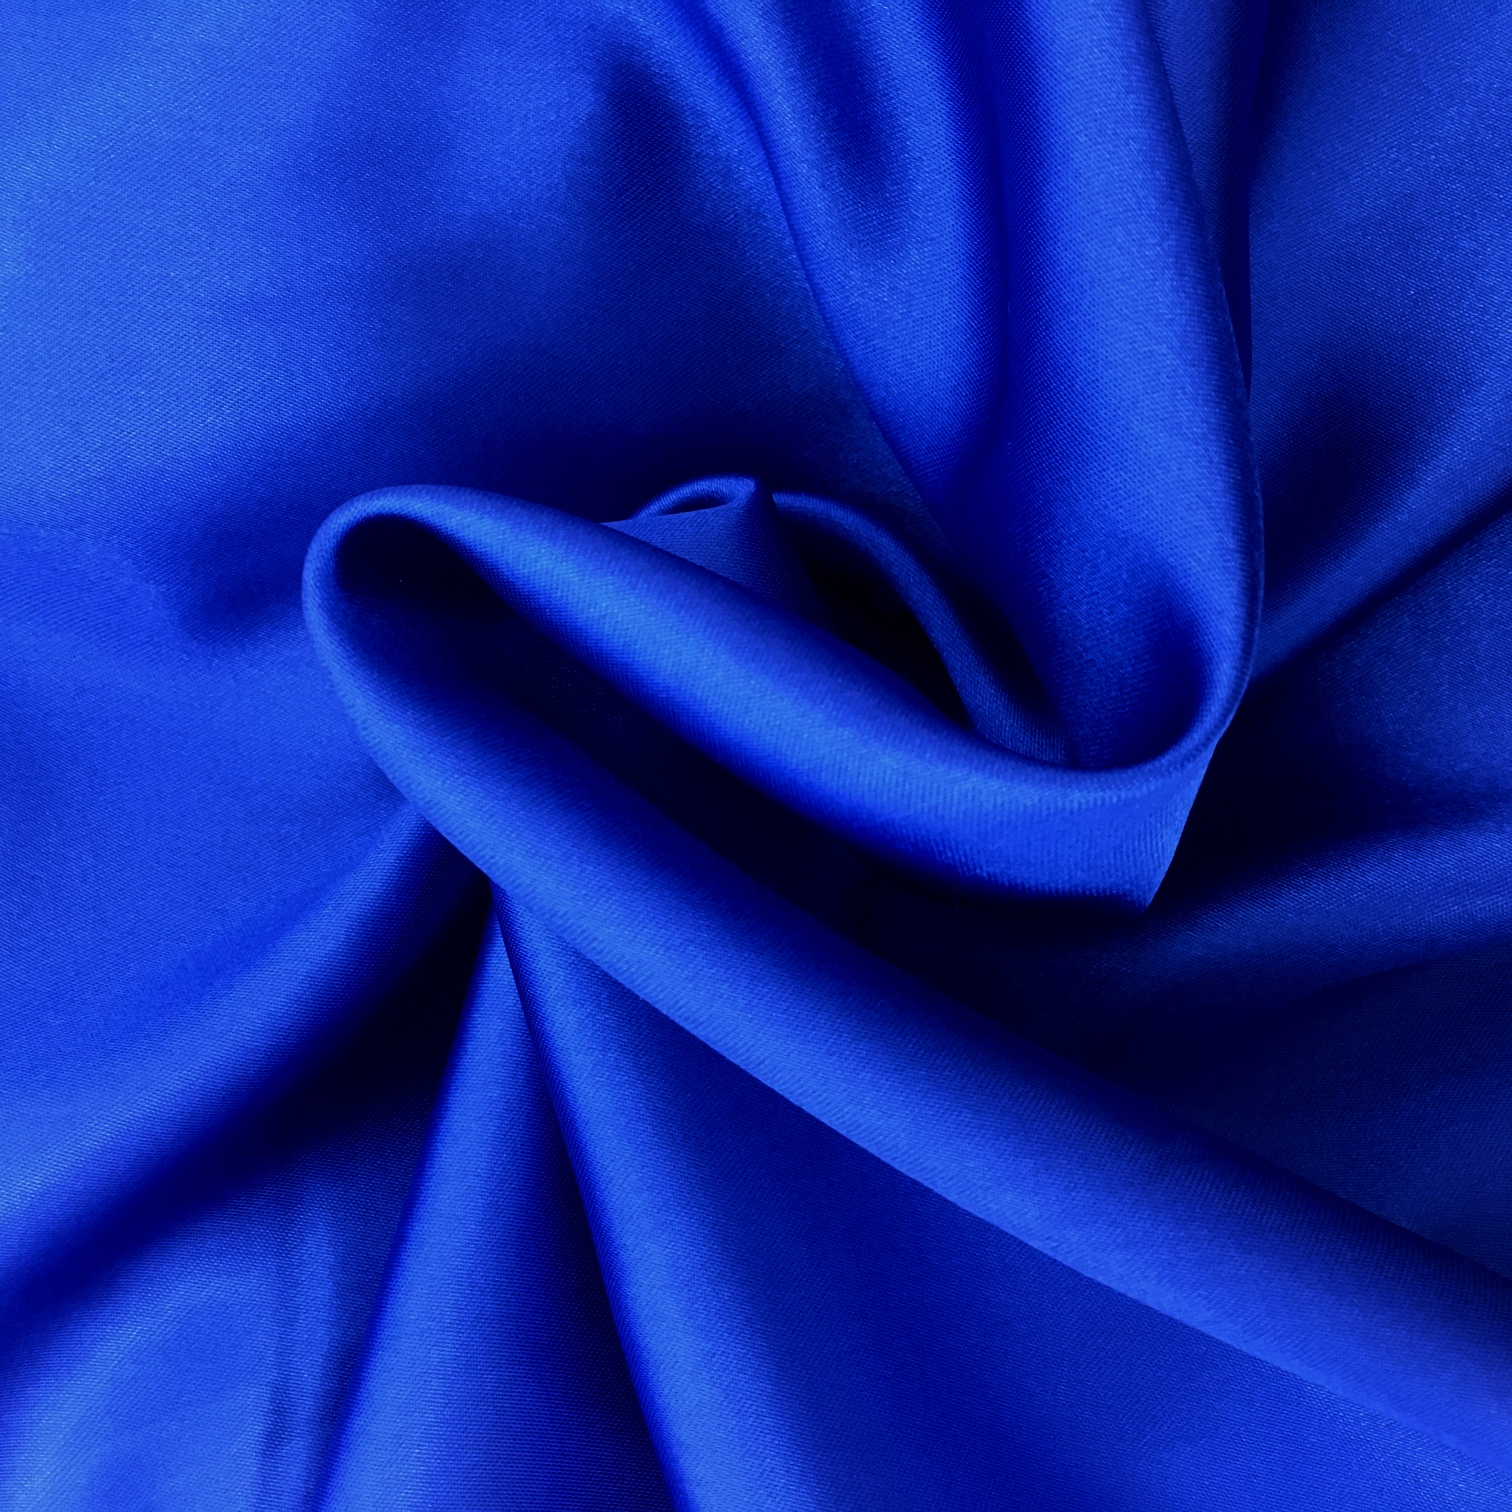 20 metres of Polyester Satin - Royal Blue